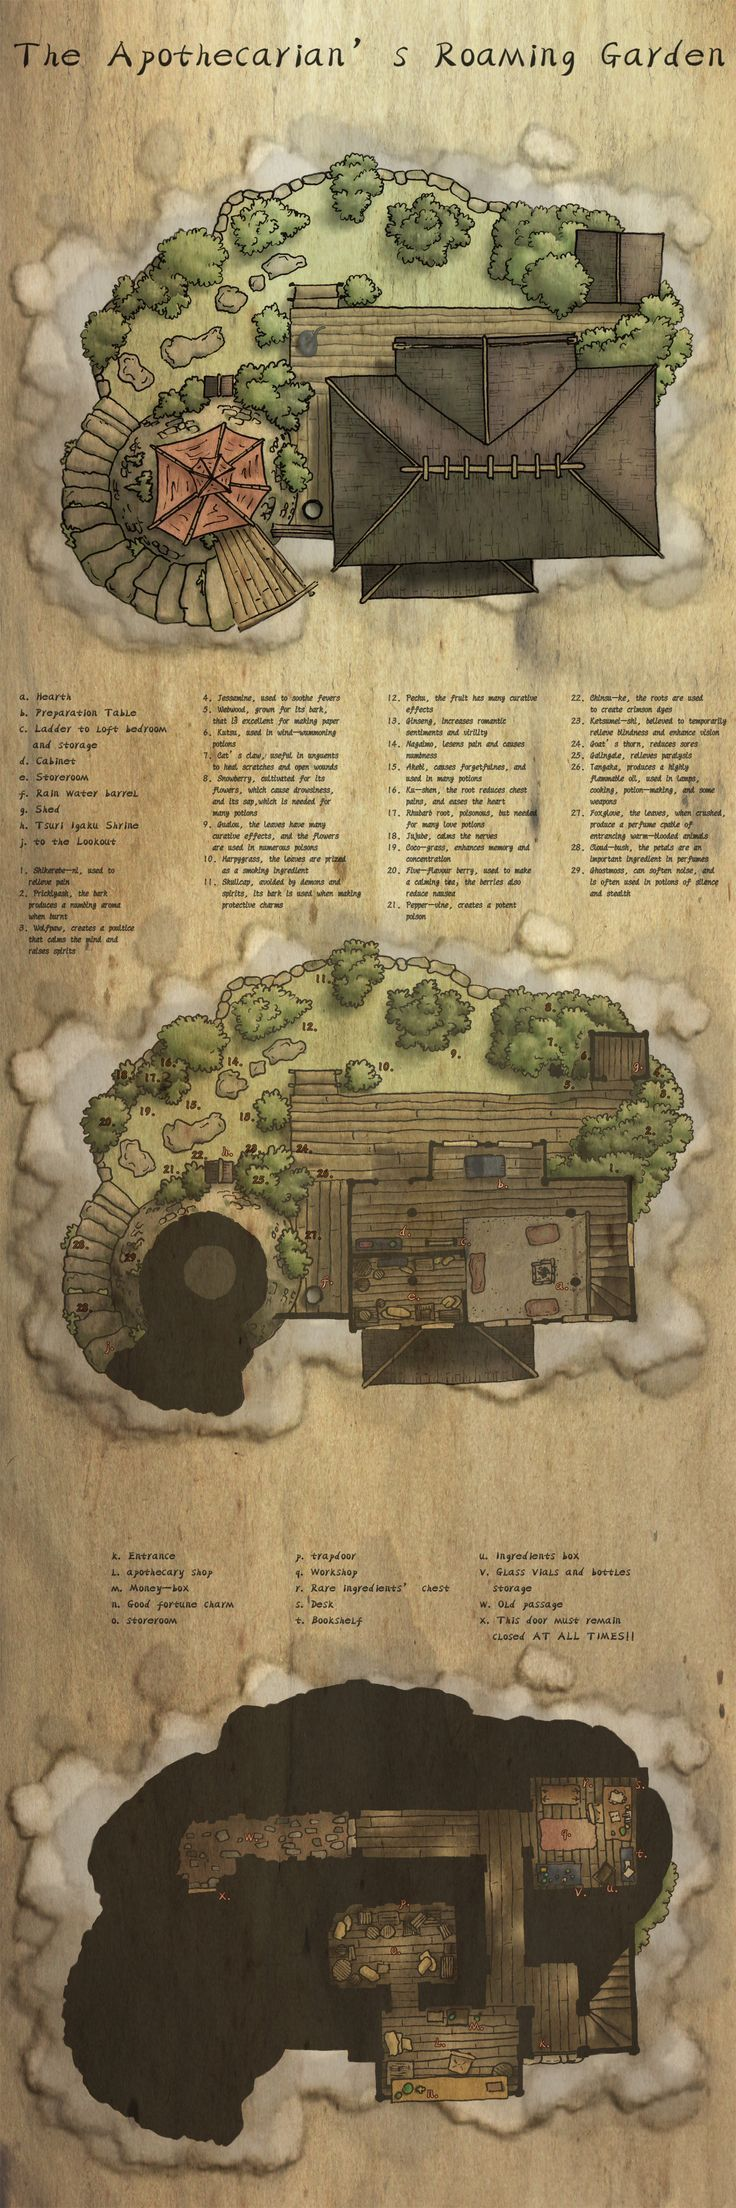 The Apothacarian's Roaming Garden Wonderful map with incredibly detailed info about herbal remedies. (scheduled via http://www.tailwindapp.com?utm_source=pinterest&utm_medium=twpin&utm_content=post48041262&utm_campaign=scheduler_attribution)